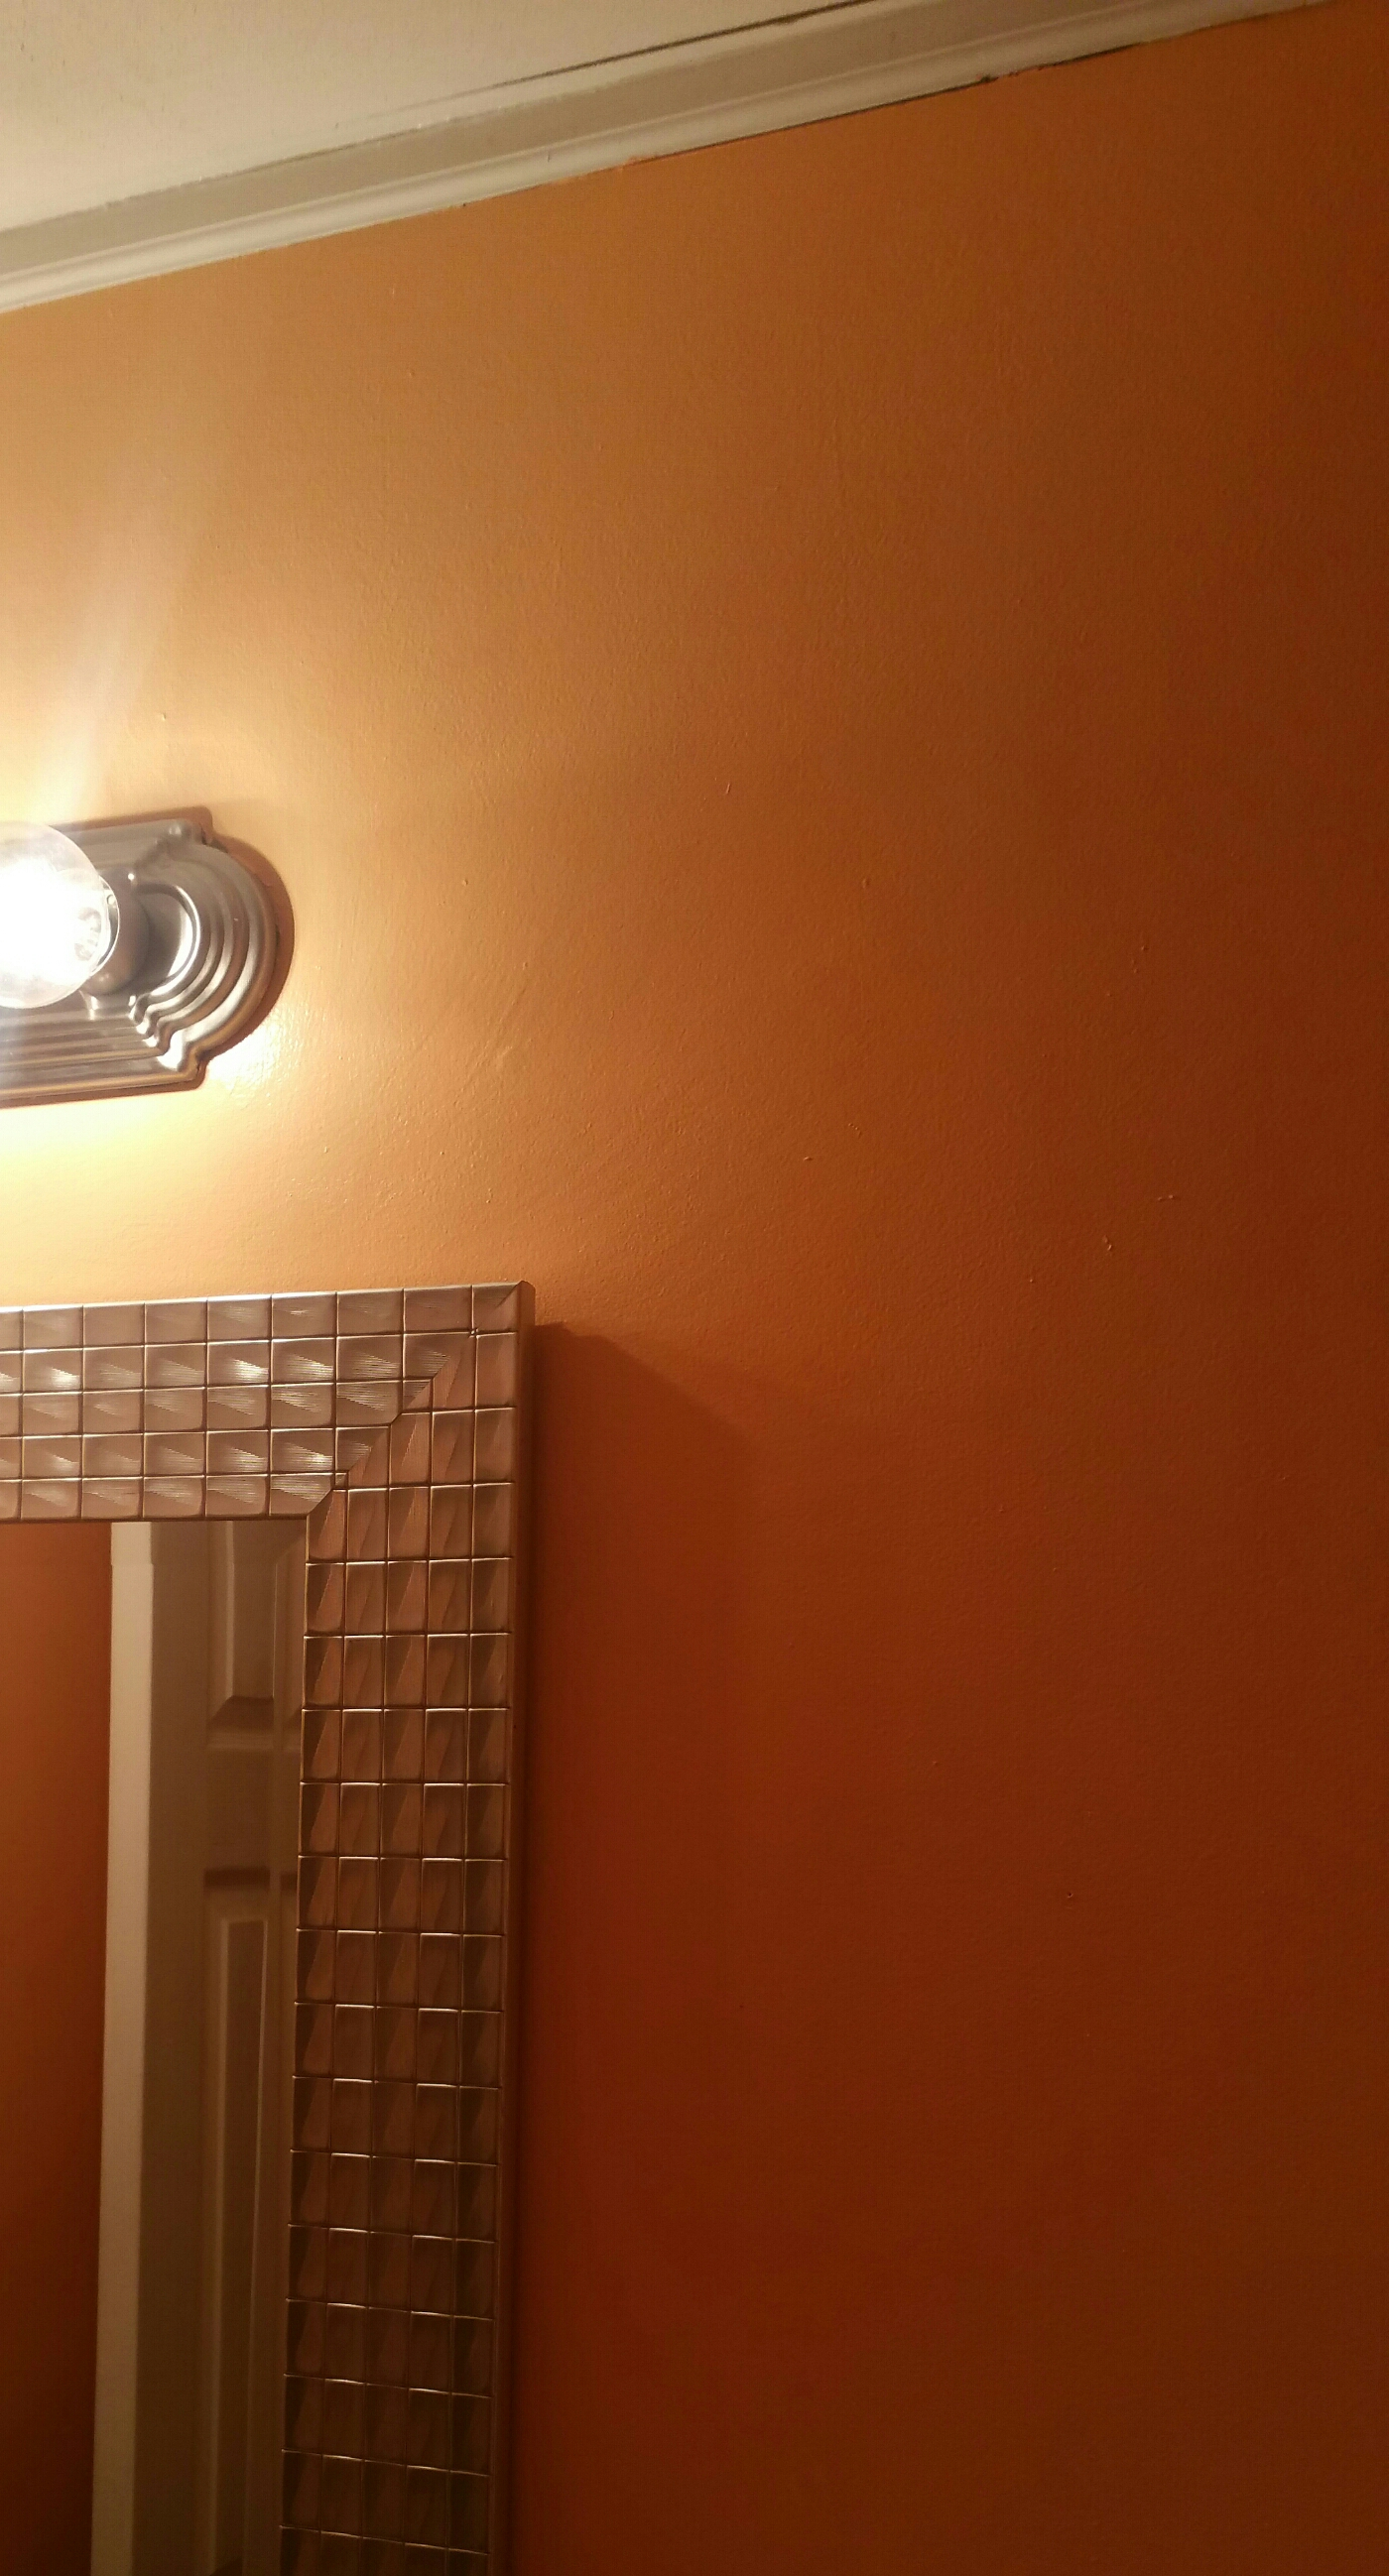 Crown Moldingceiling In My Bathroom Is Cracked And Need Help - Crown molding for bathroom